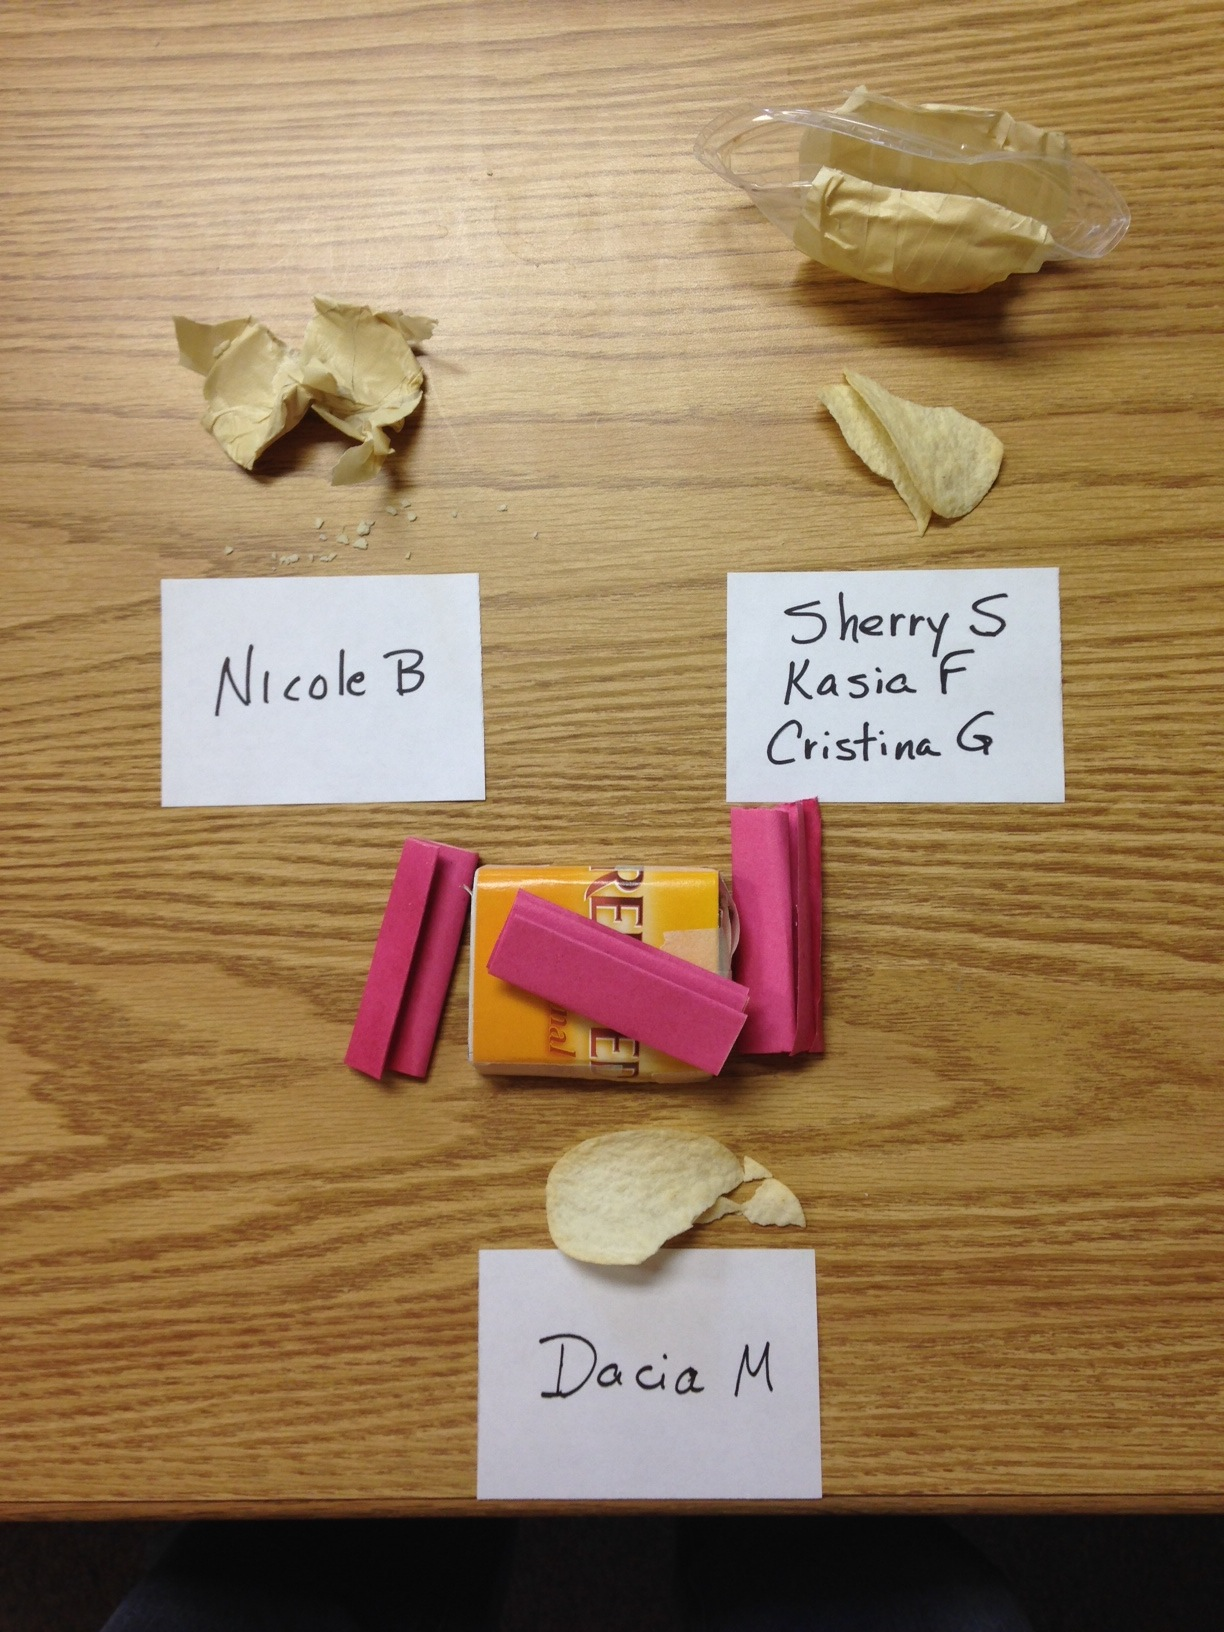 Pringles Chip Challenge Results Online Instruction And Learning